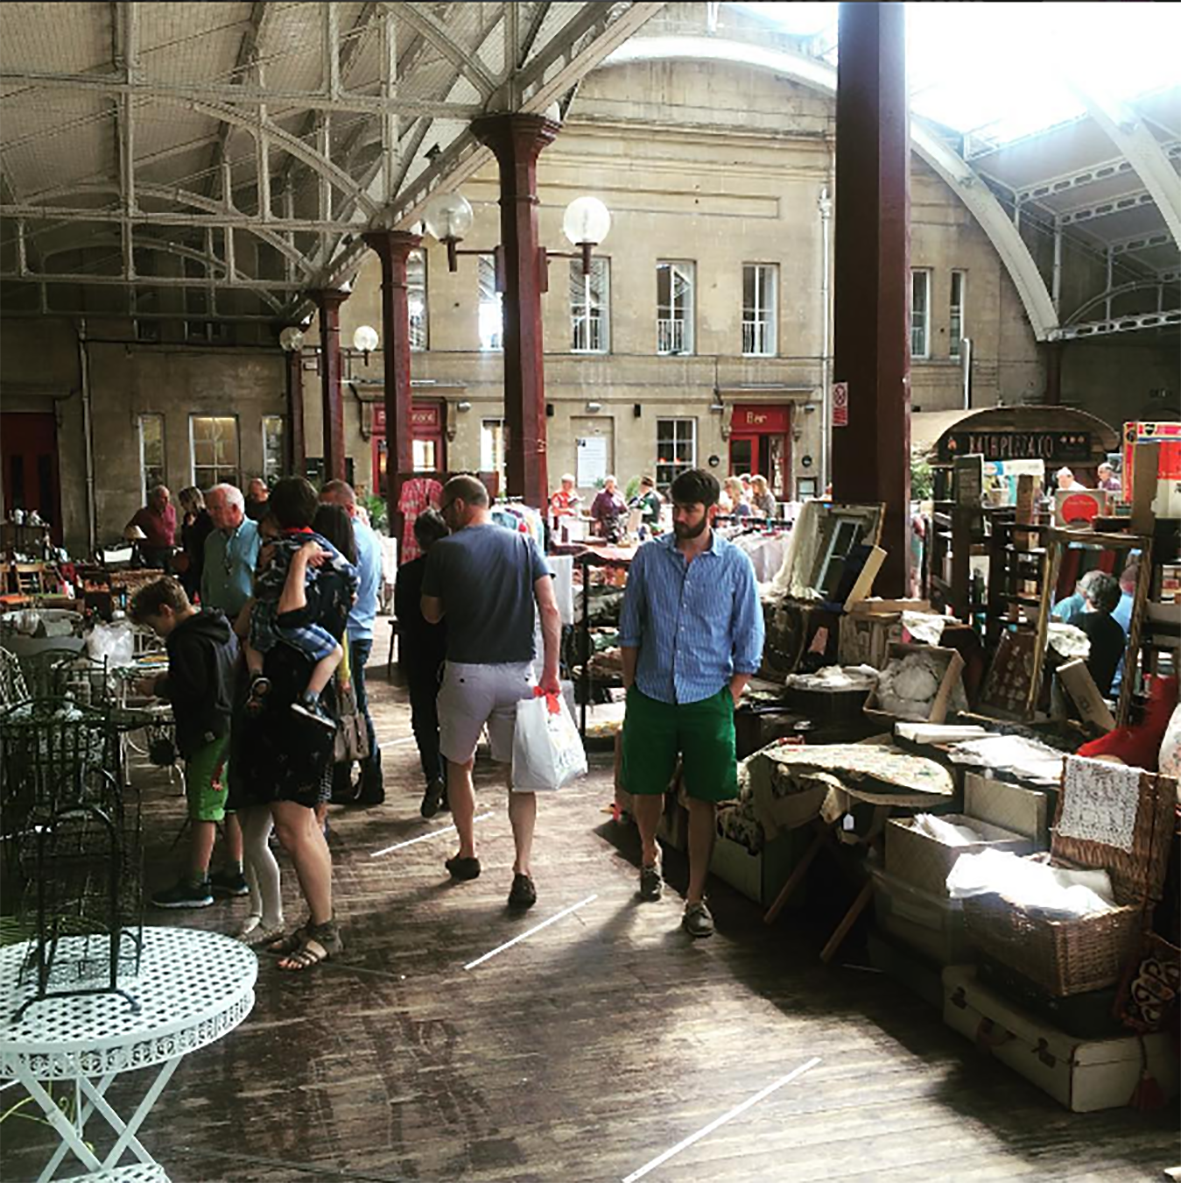 TODAY Sun 25th June, 8-4pm #free entry #BATH #Vintage #Antiques #Market #midcentury #Art #Fashion #Furniture @bathindiechat @AskBath<br>http://pic.twitter.com/TDFfkIfj8A